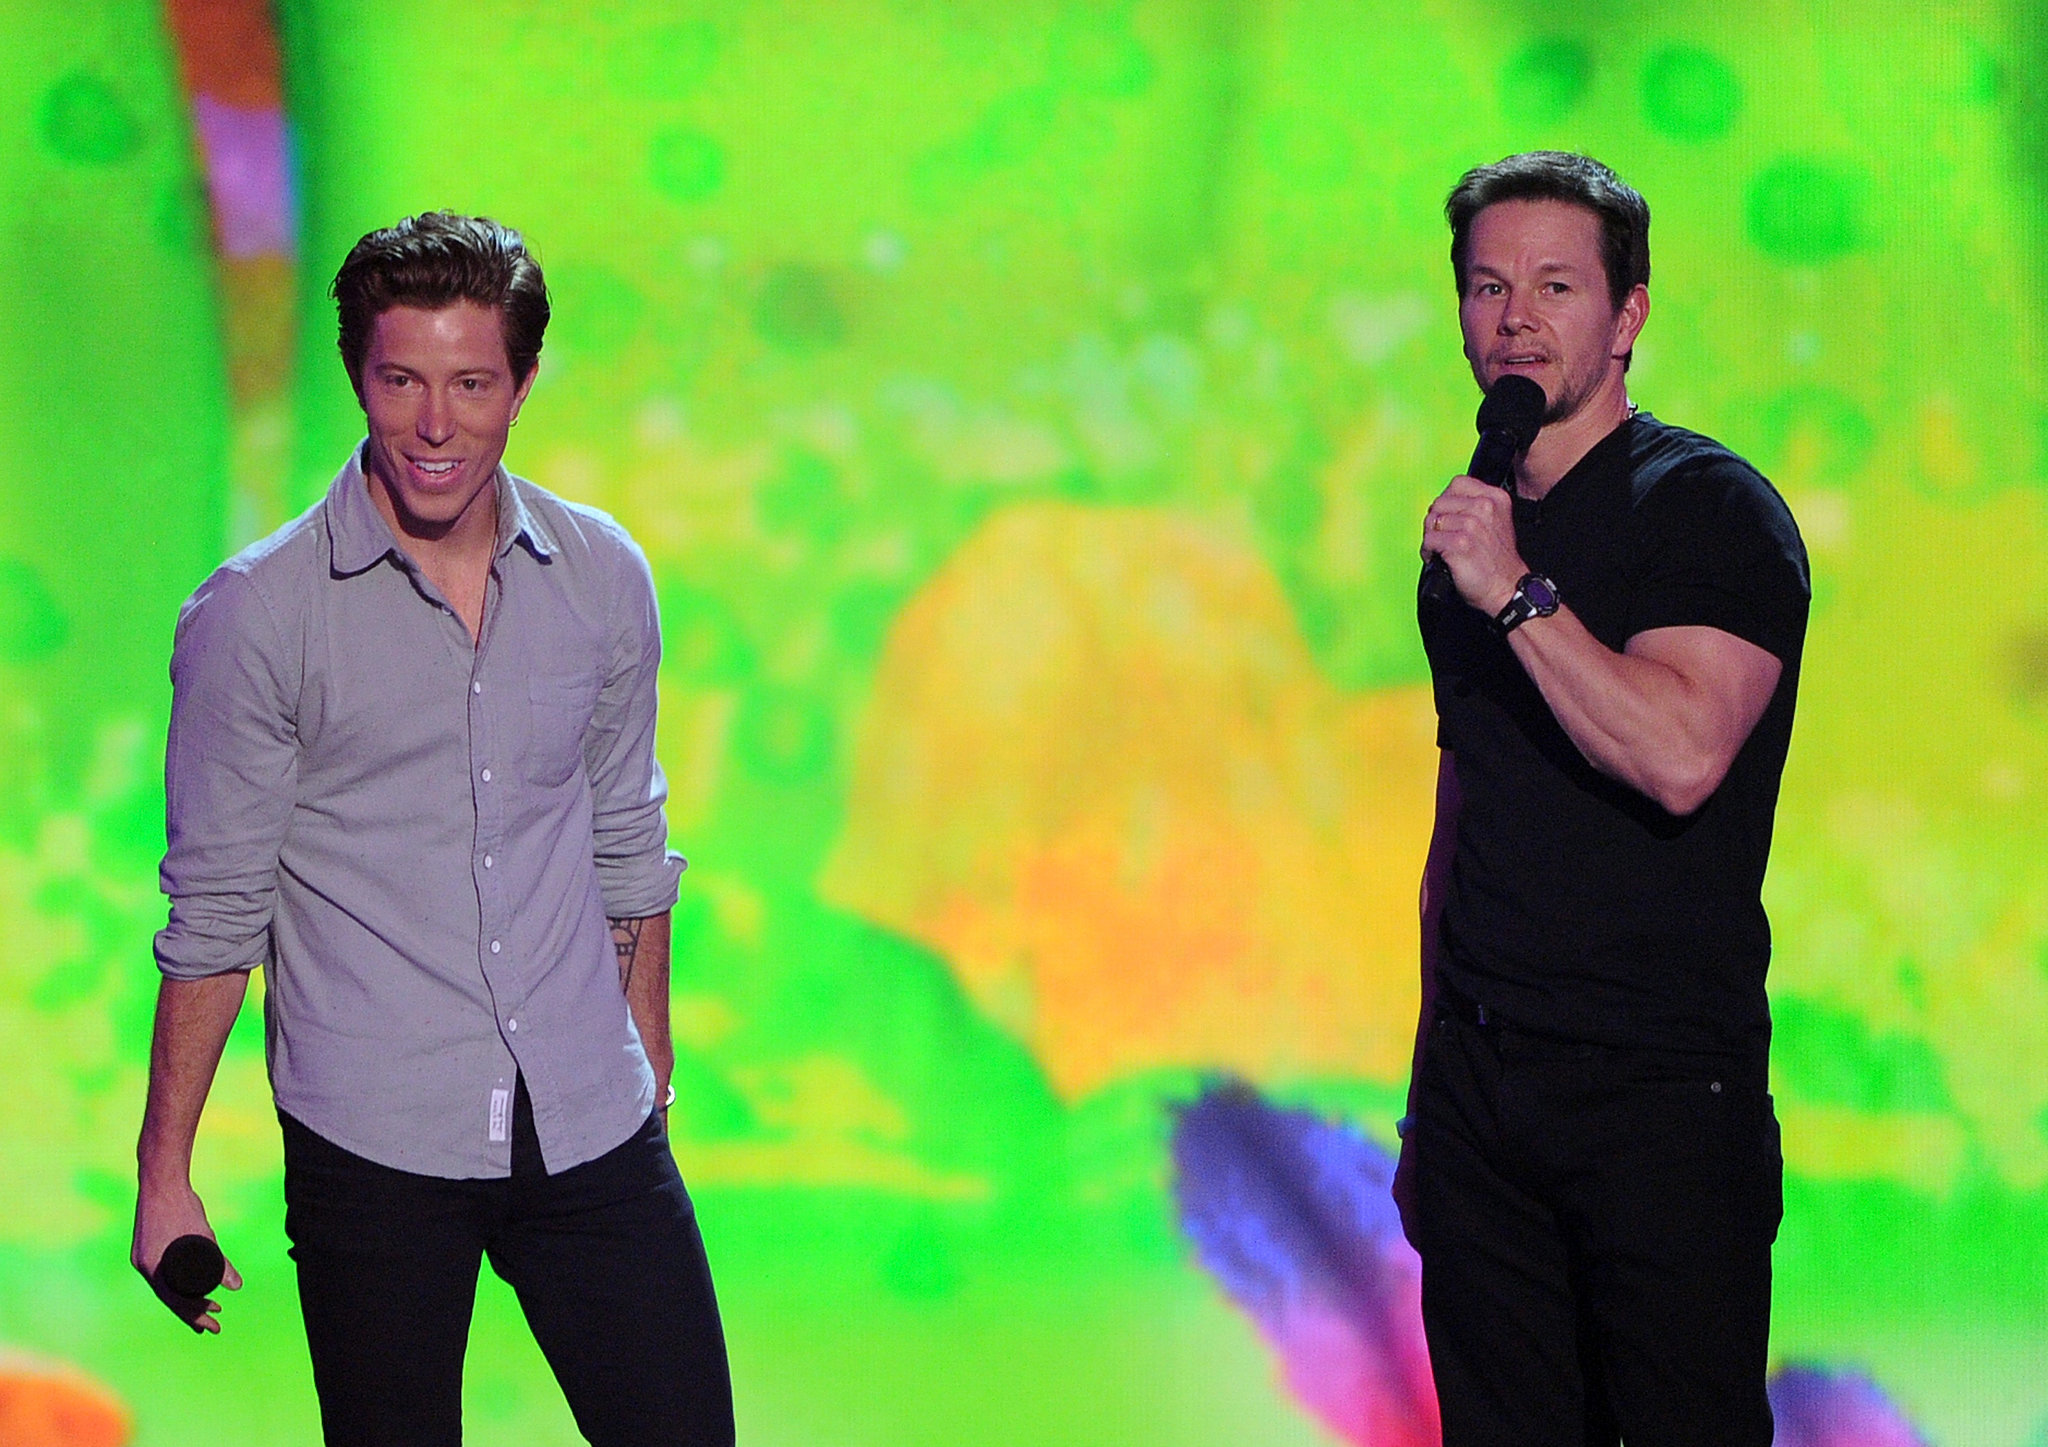 Shaun White took center stage with Mark Wahlberg.